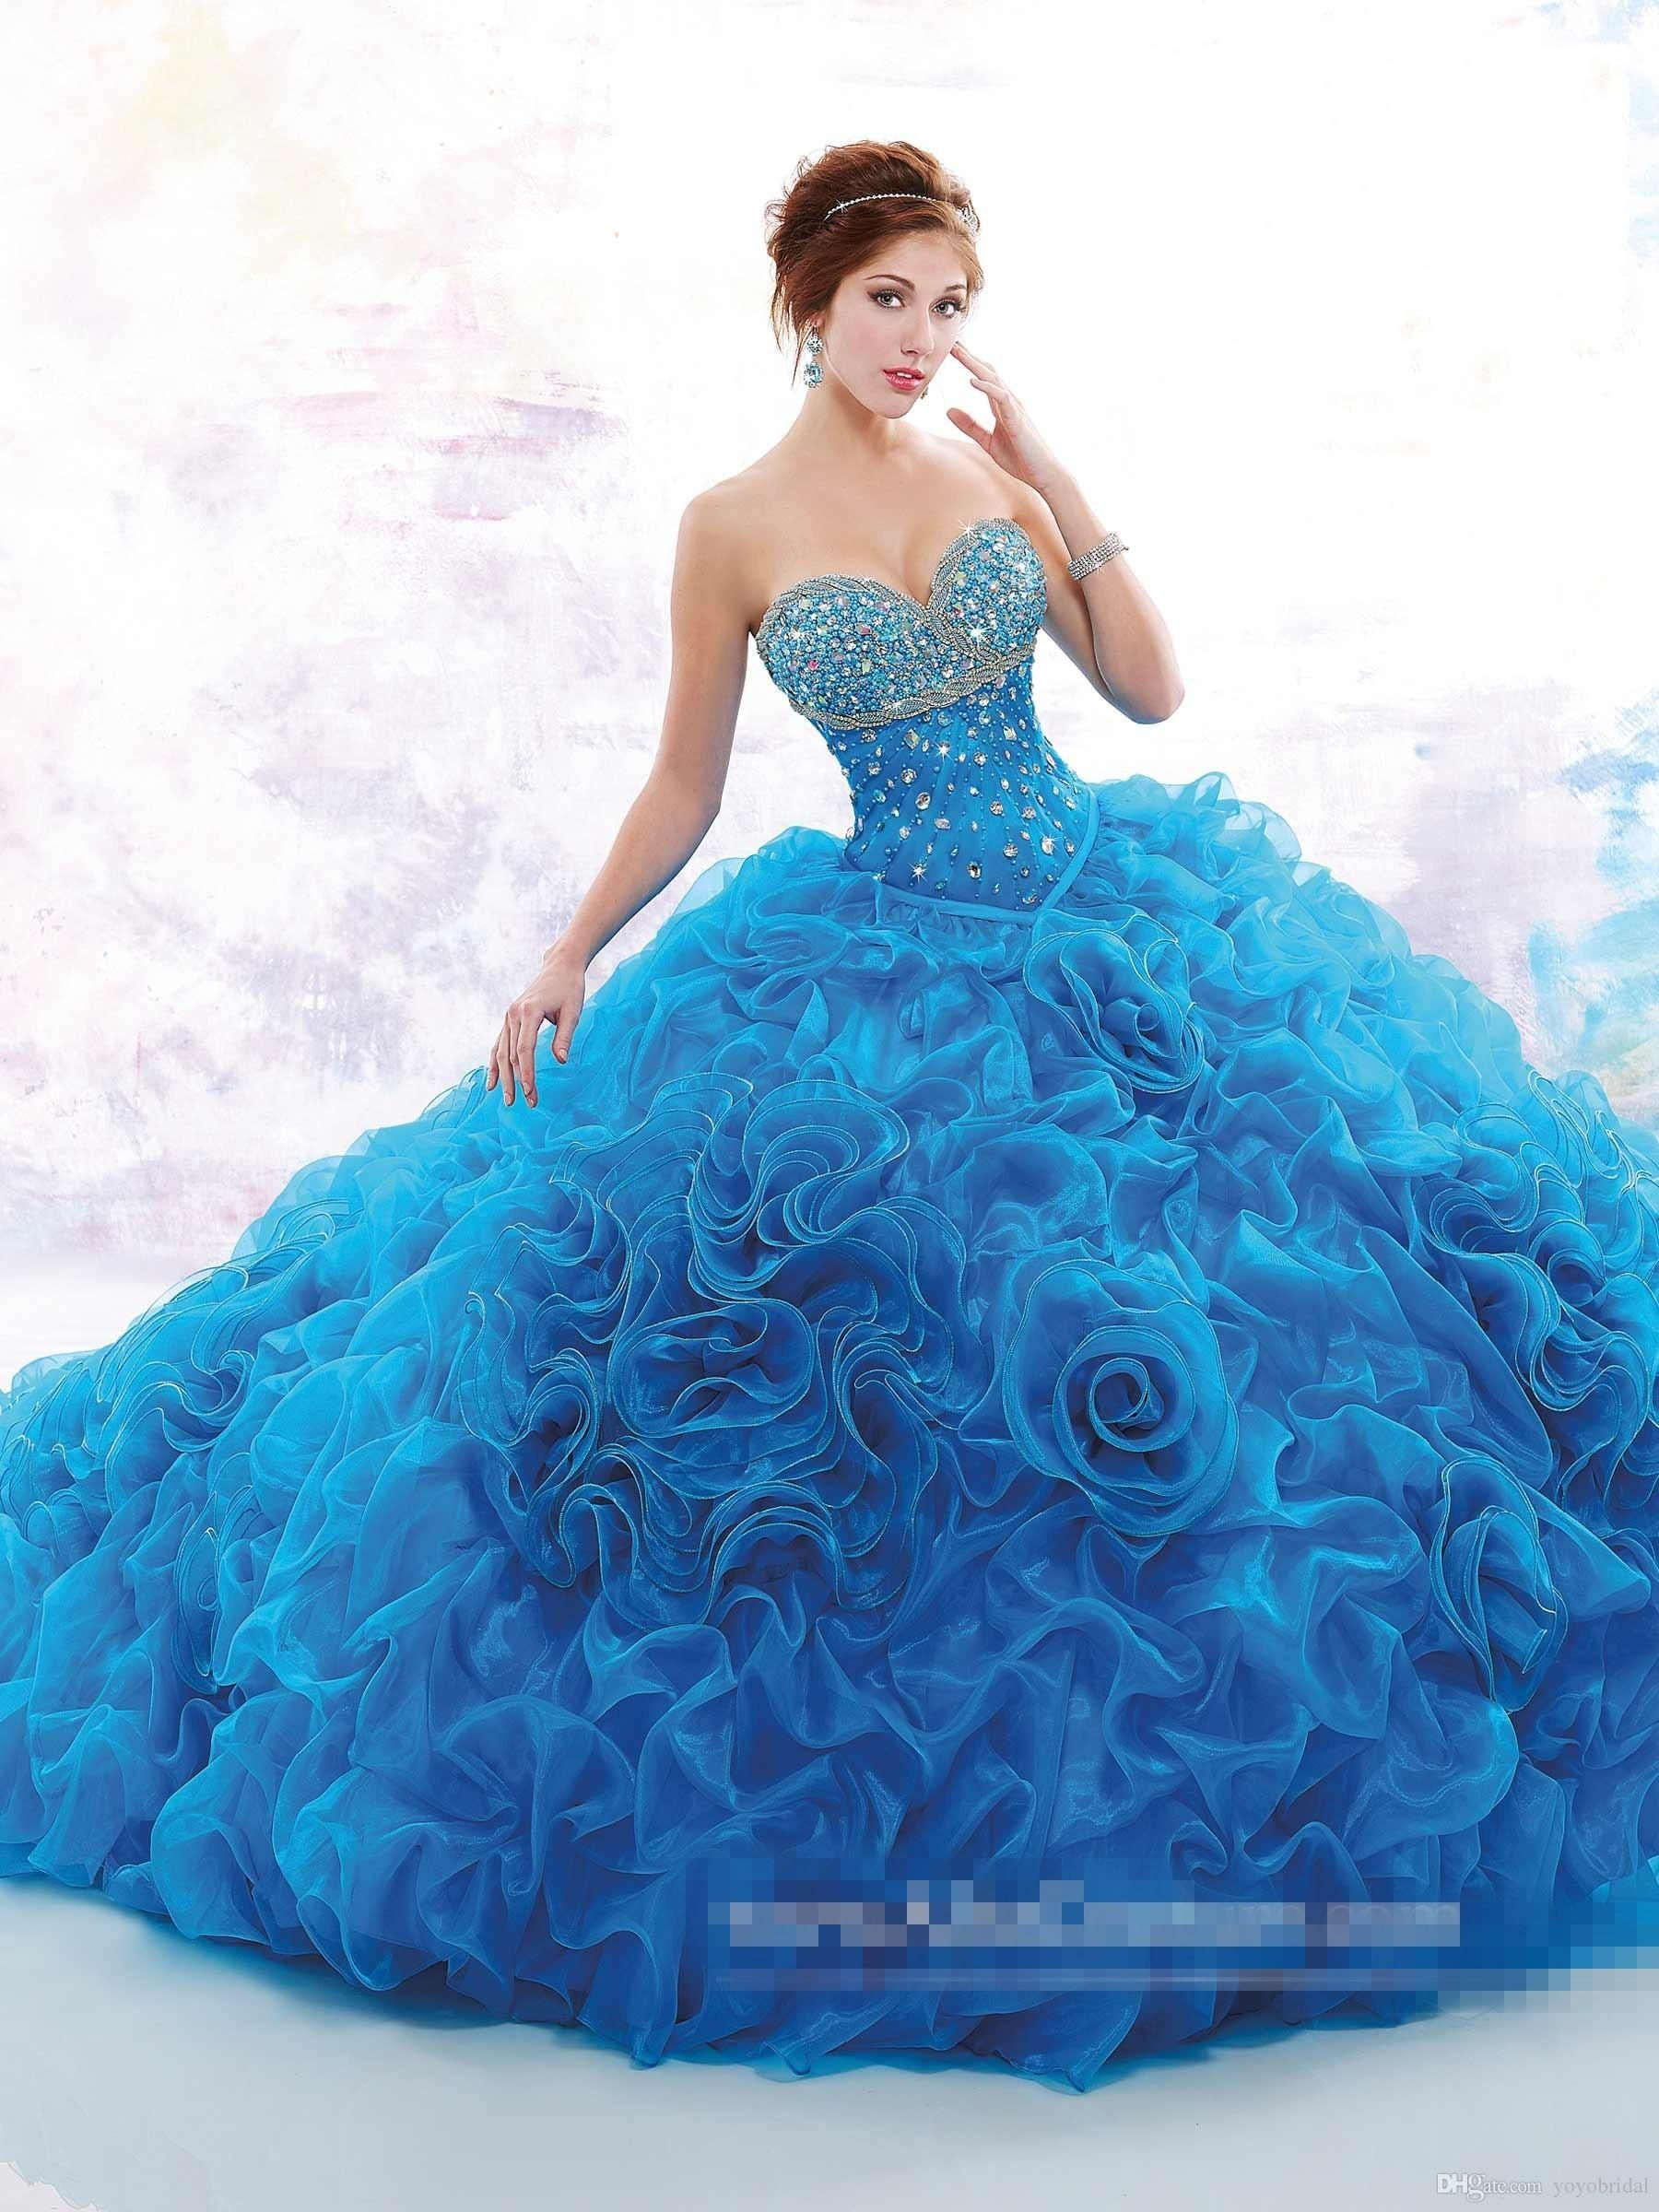 f94b1dd5ddd 2017 Quinceanera Dresses Crystal Beading Sequins Sweetheart Piping Blue  Rose Flower Cascading Ruffles Dress With Wrap Custom Ball Gown